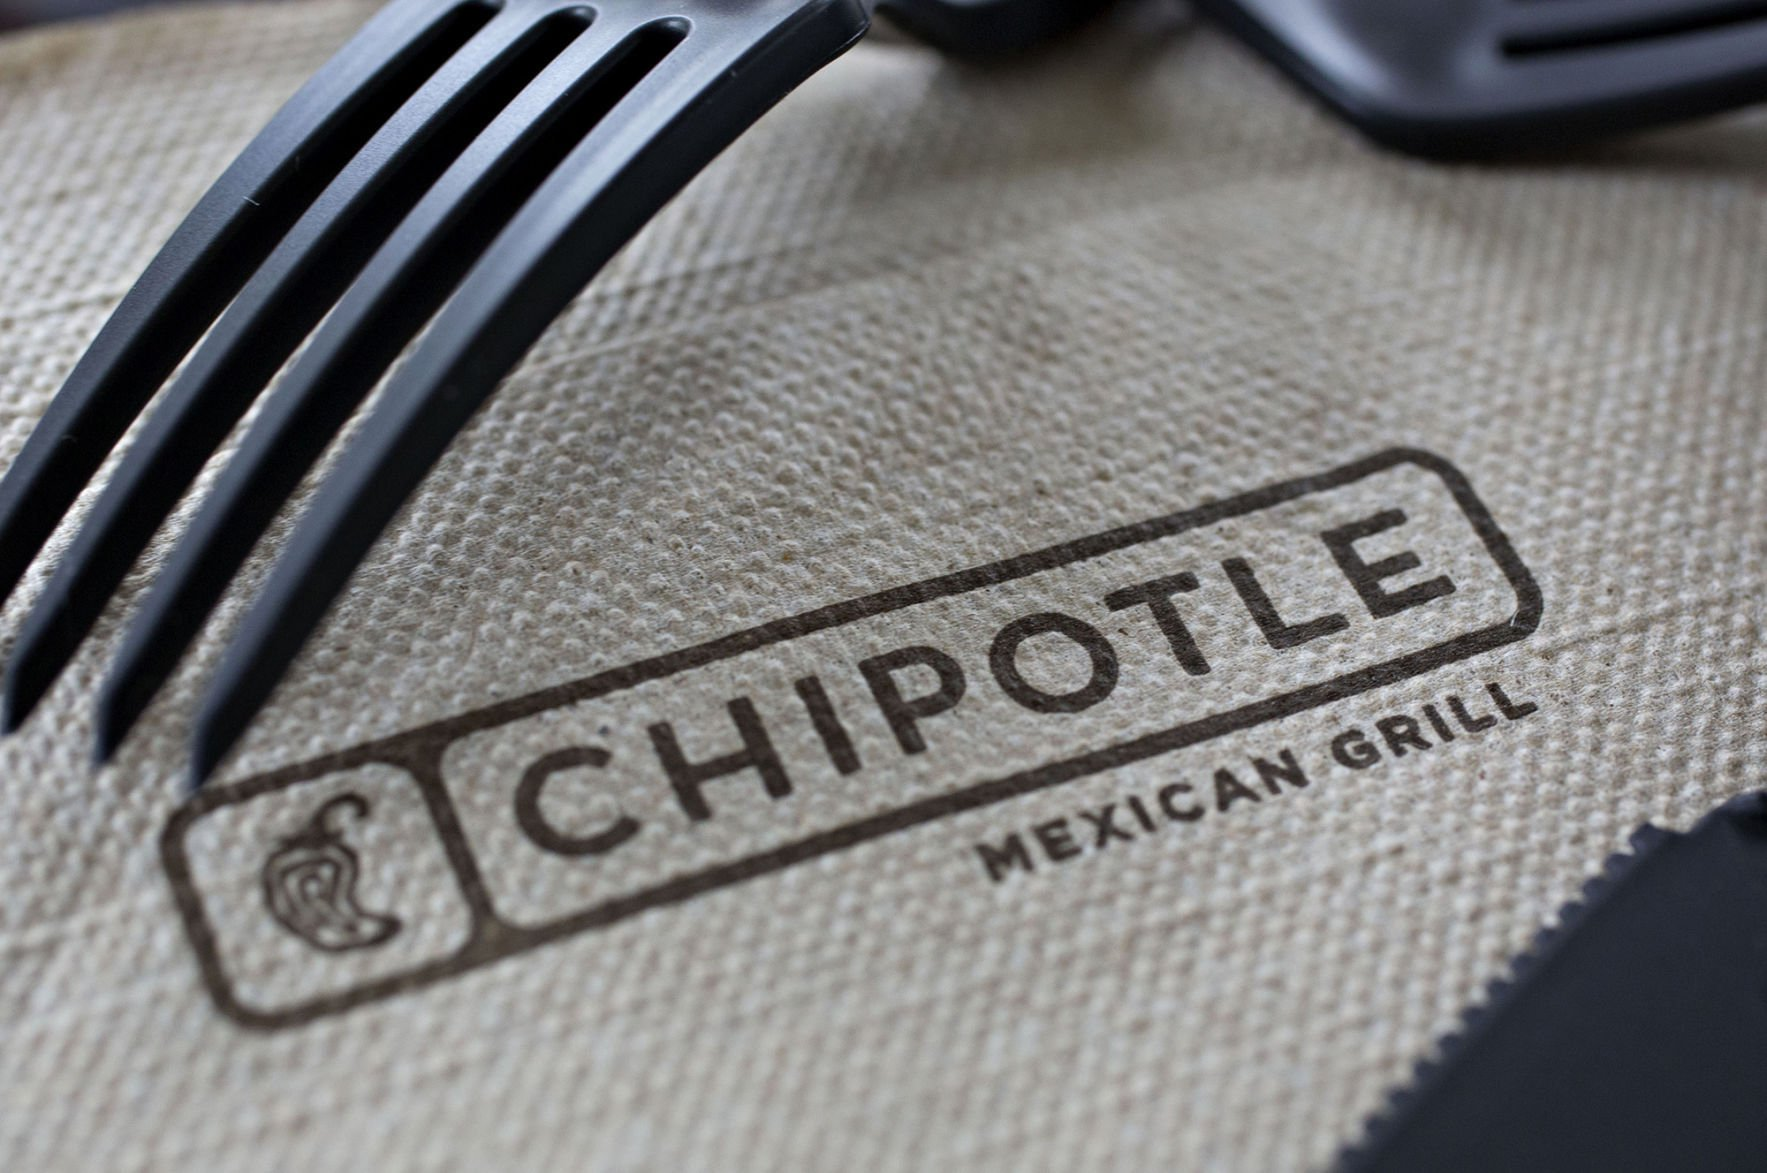 Chipotle's Norovirus Outbreak May Have Sickened Over 100, Officials Report